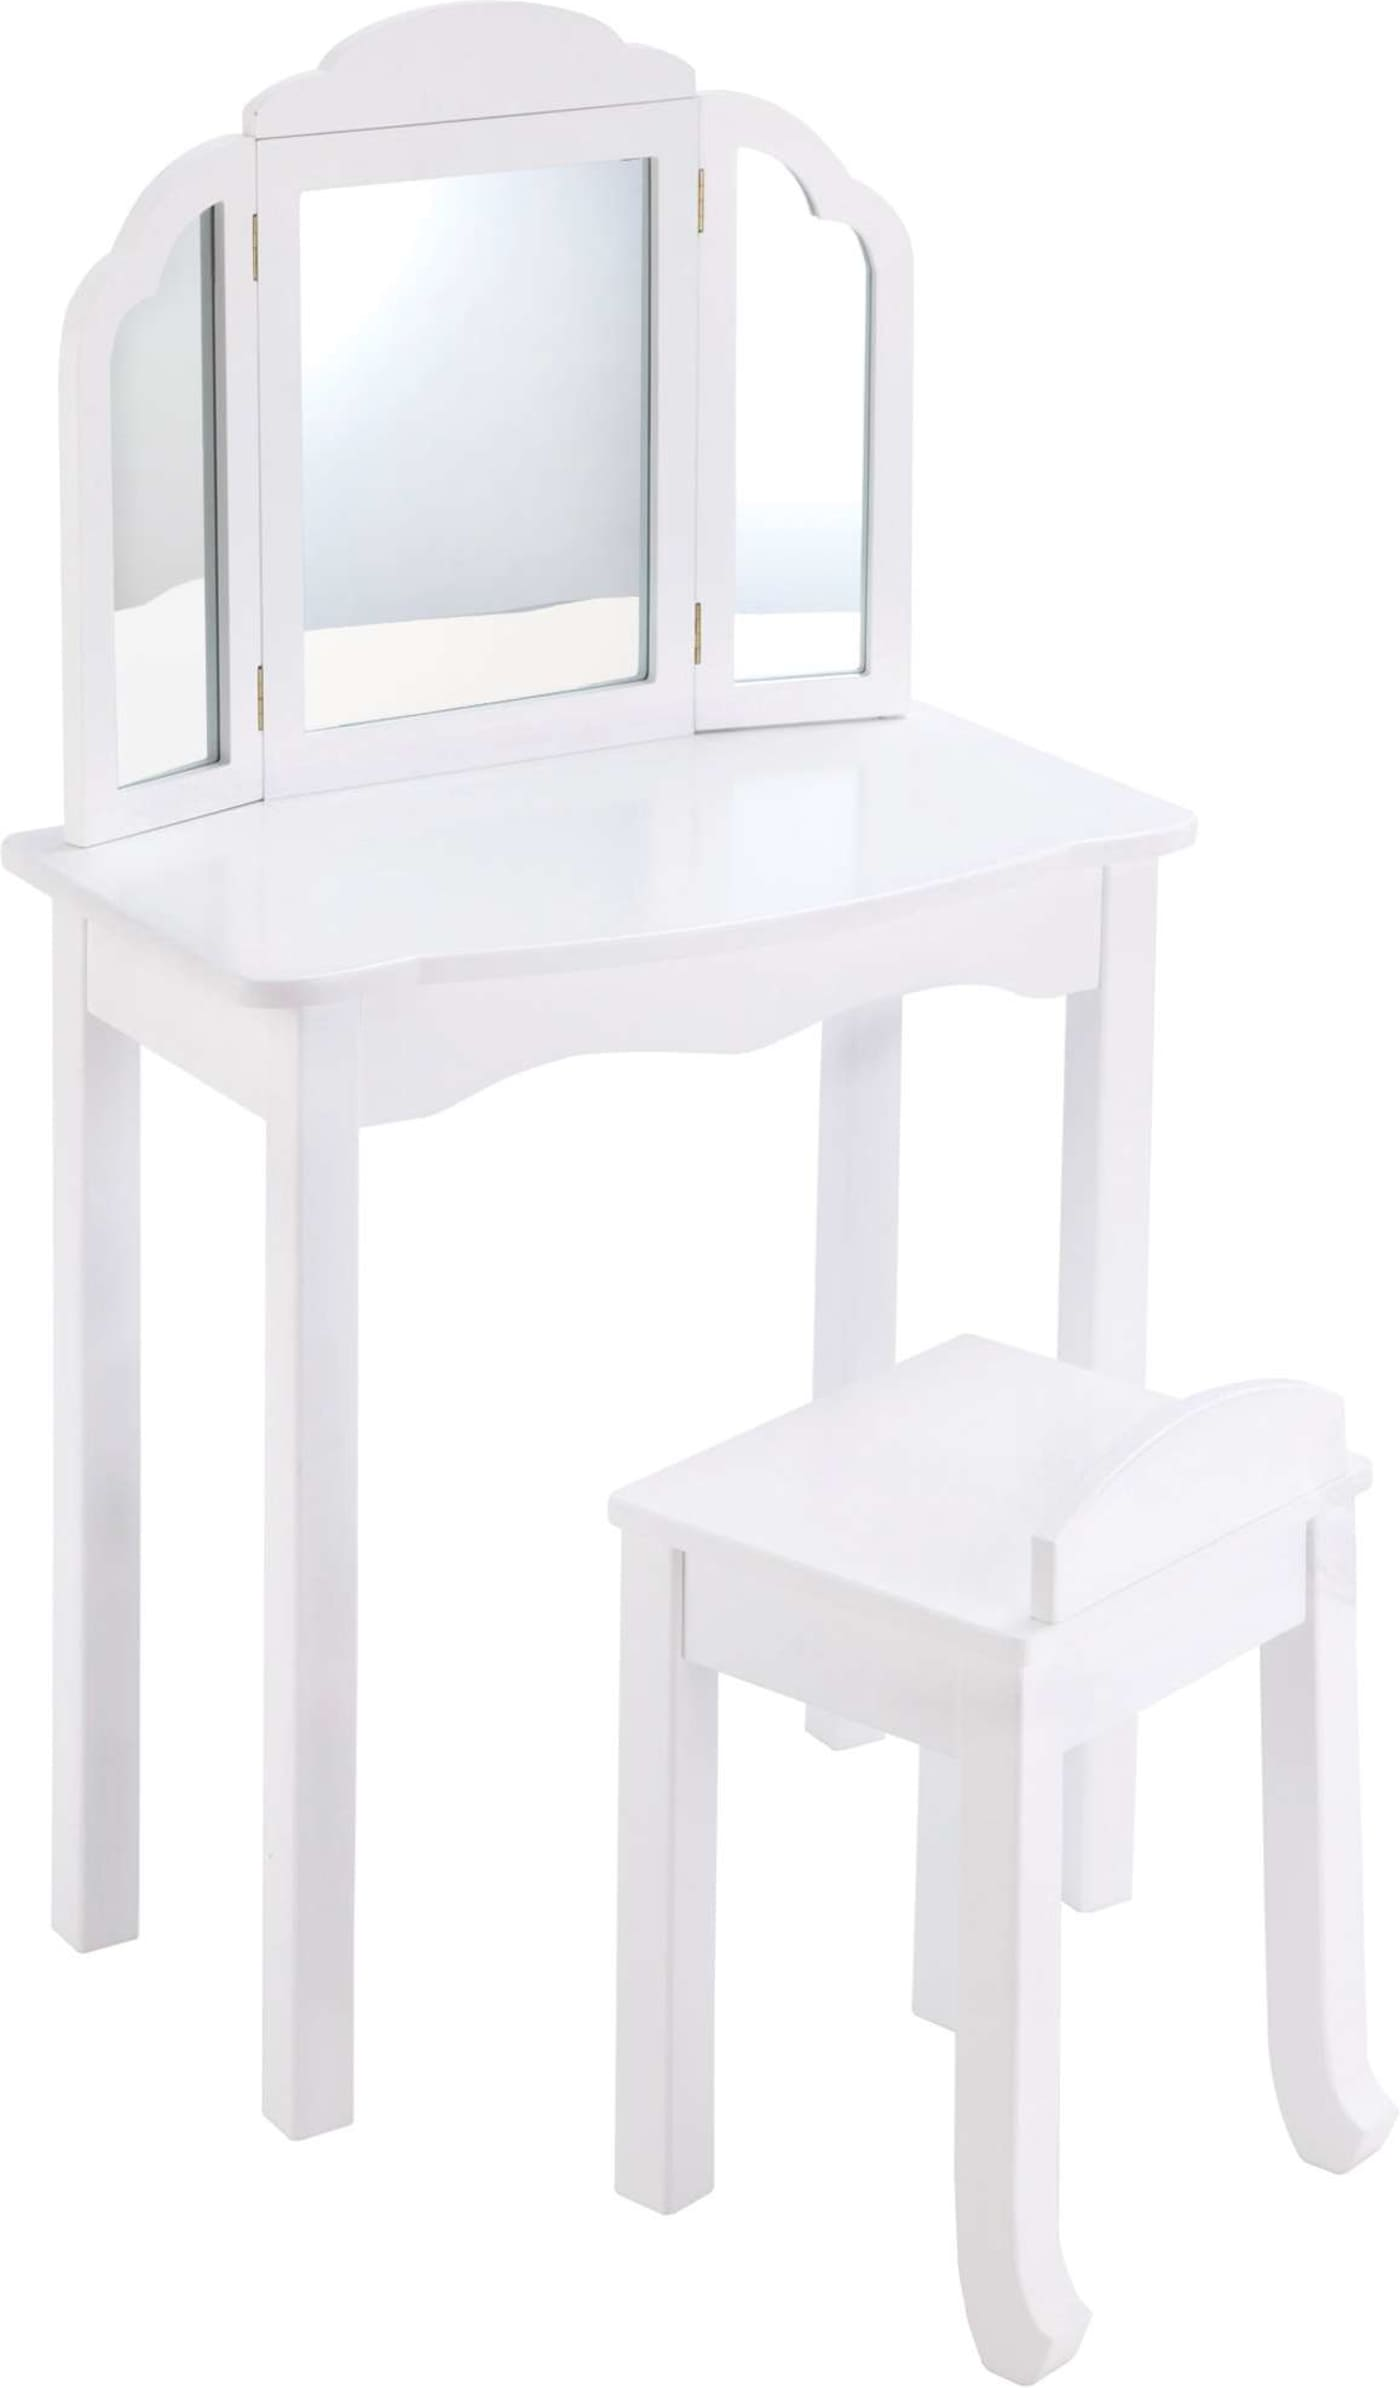 Guidecraft White Expressions Vanity Amp Stool Amp Reviews